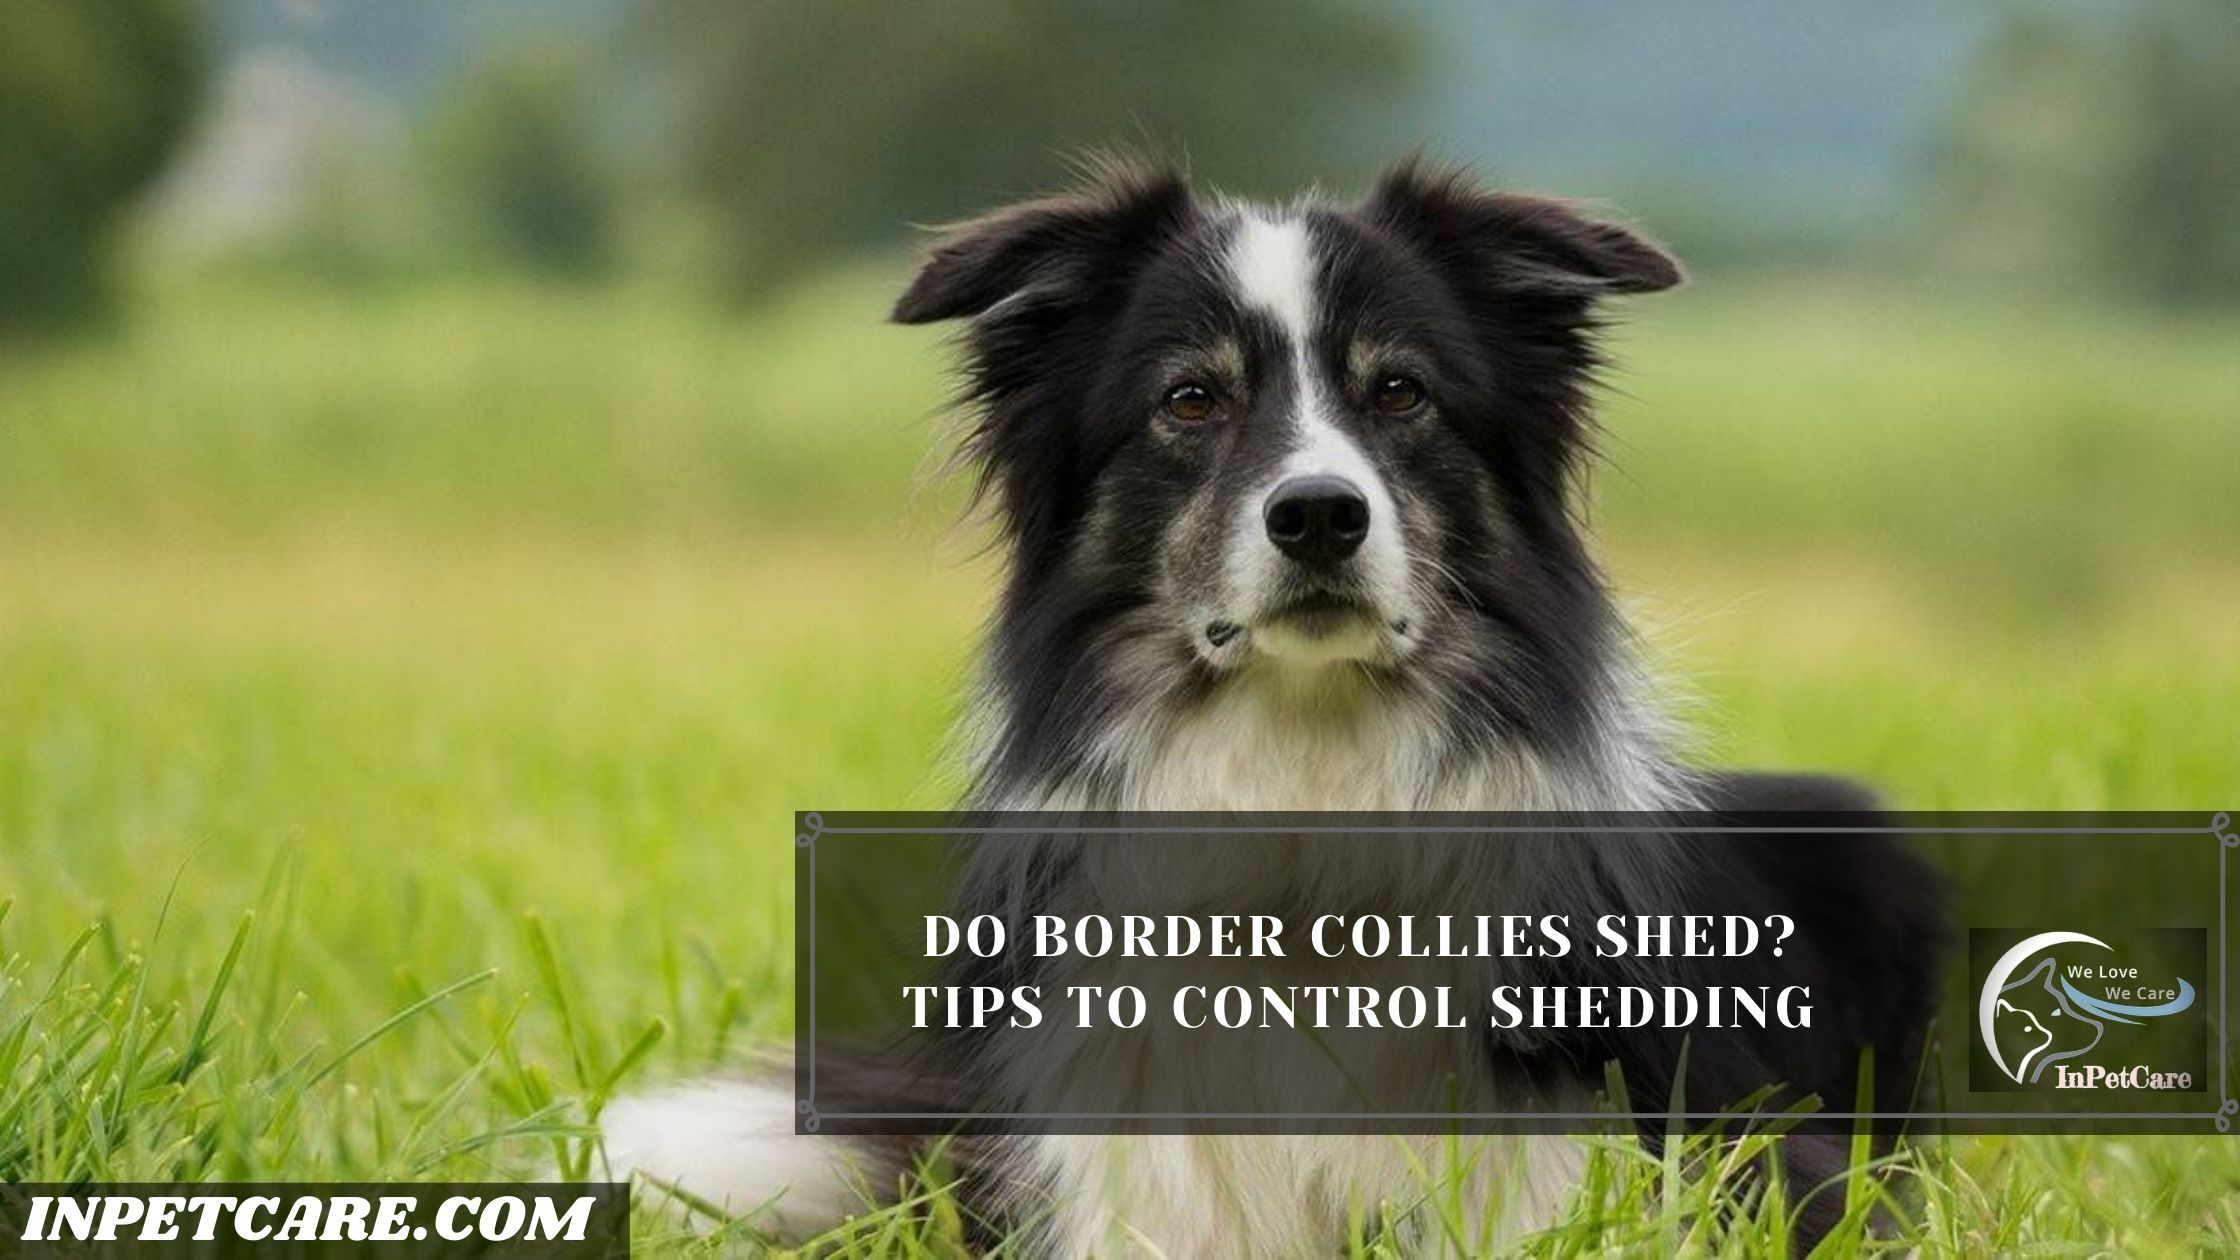 Do Border Collies Shed? Tips To Control Shedding